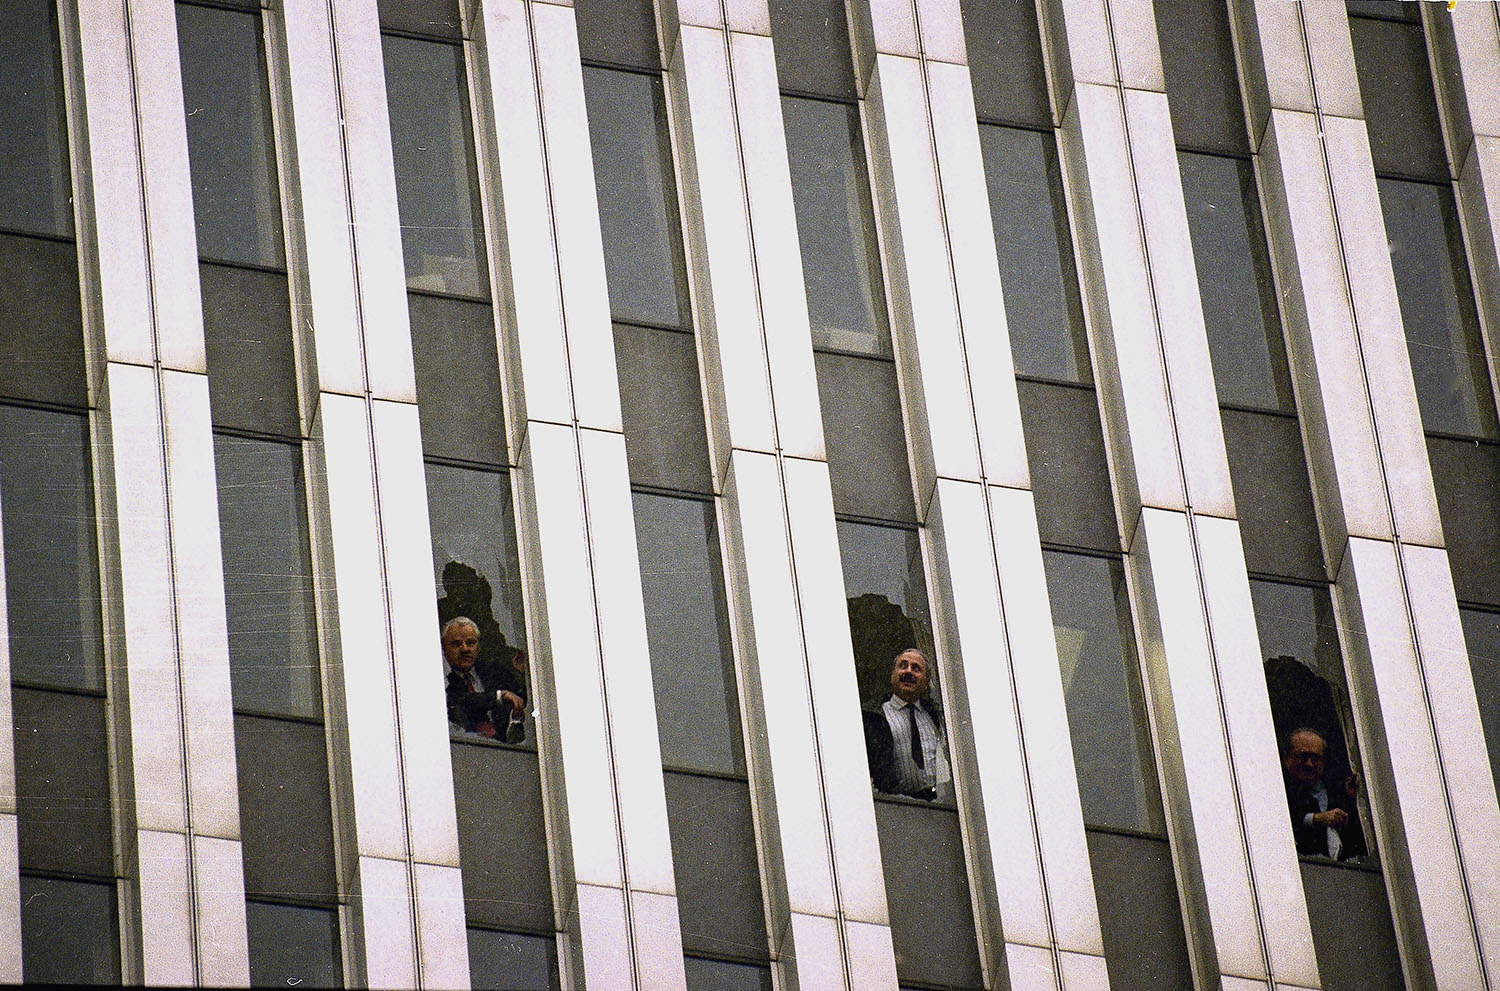 <div class='meta'><div class='origin-logo' data-origin='AP'></div><span class='caption-text' data-credit='AP Photo/Alex Brandon'>Workers peer through broken windows of the World Trade Center in New York, Feb. 26, 1993, after an explosion in an underground garage rocked the twin towers complex.</span></div>